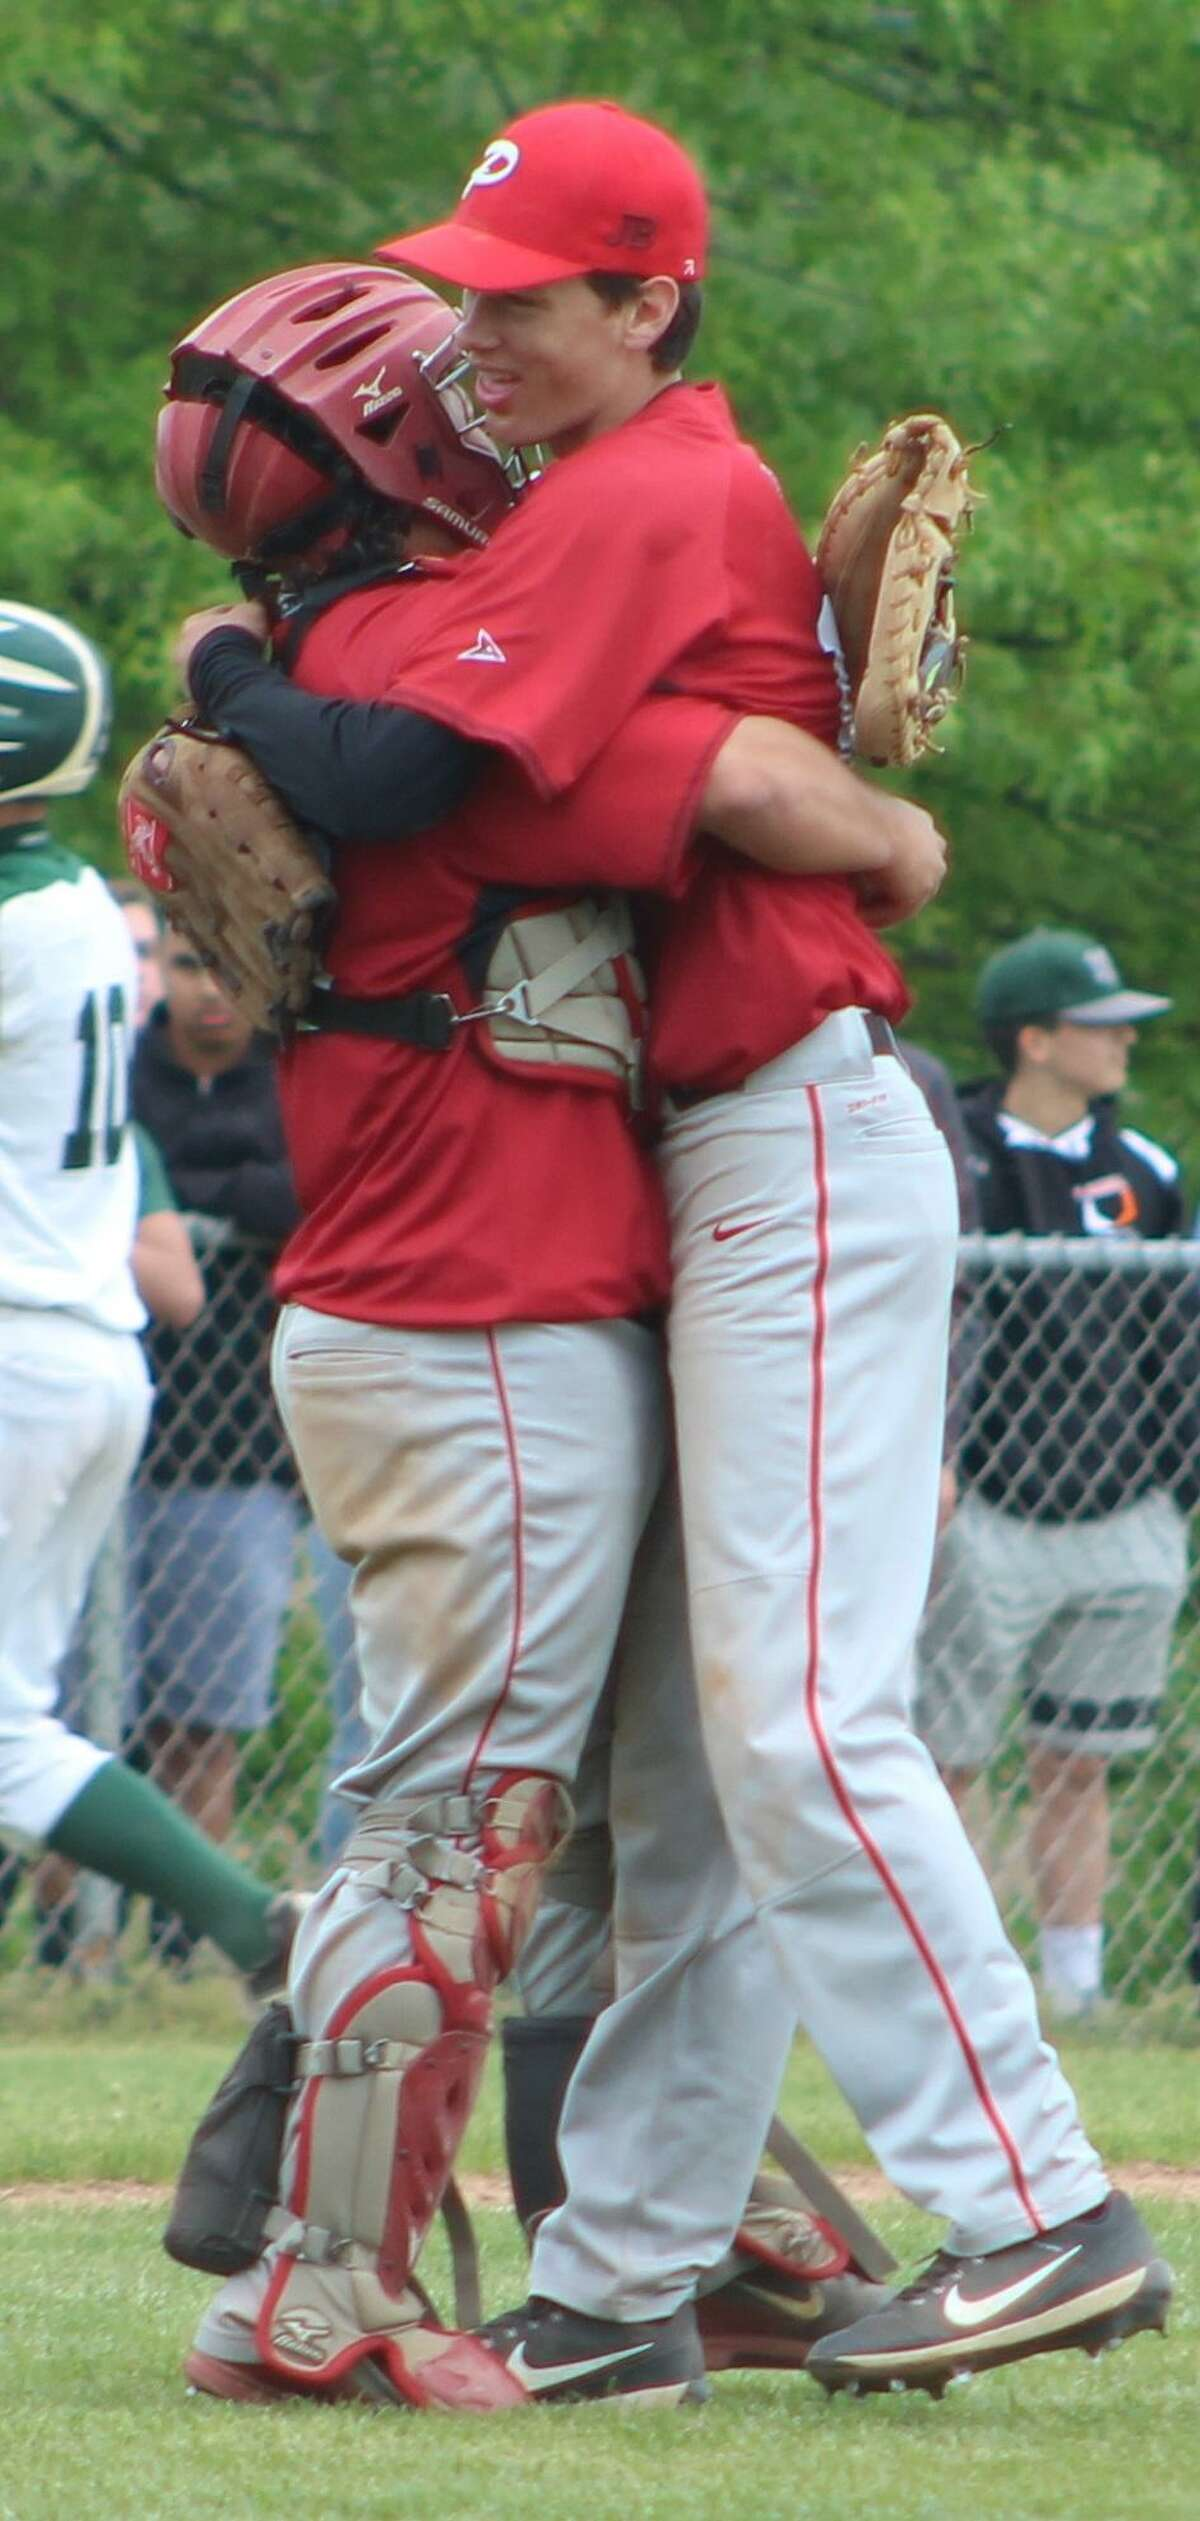 Pomperaug pitcher Ryan Dunfee, right, and catcher Nick Hebert embrace at the conclusion of the Panthers' victory over New Milford in the quarterfinals of the South-West Conference baseball tournament at New Milford High School May 20, 2017.